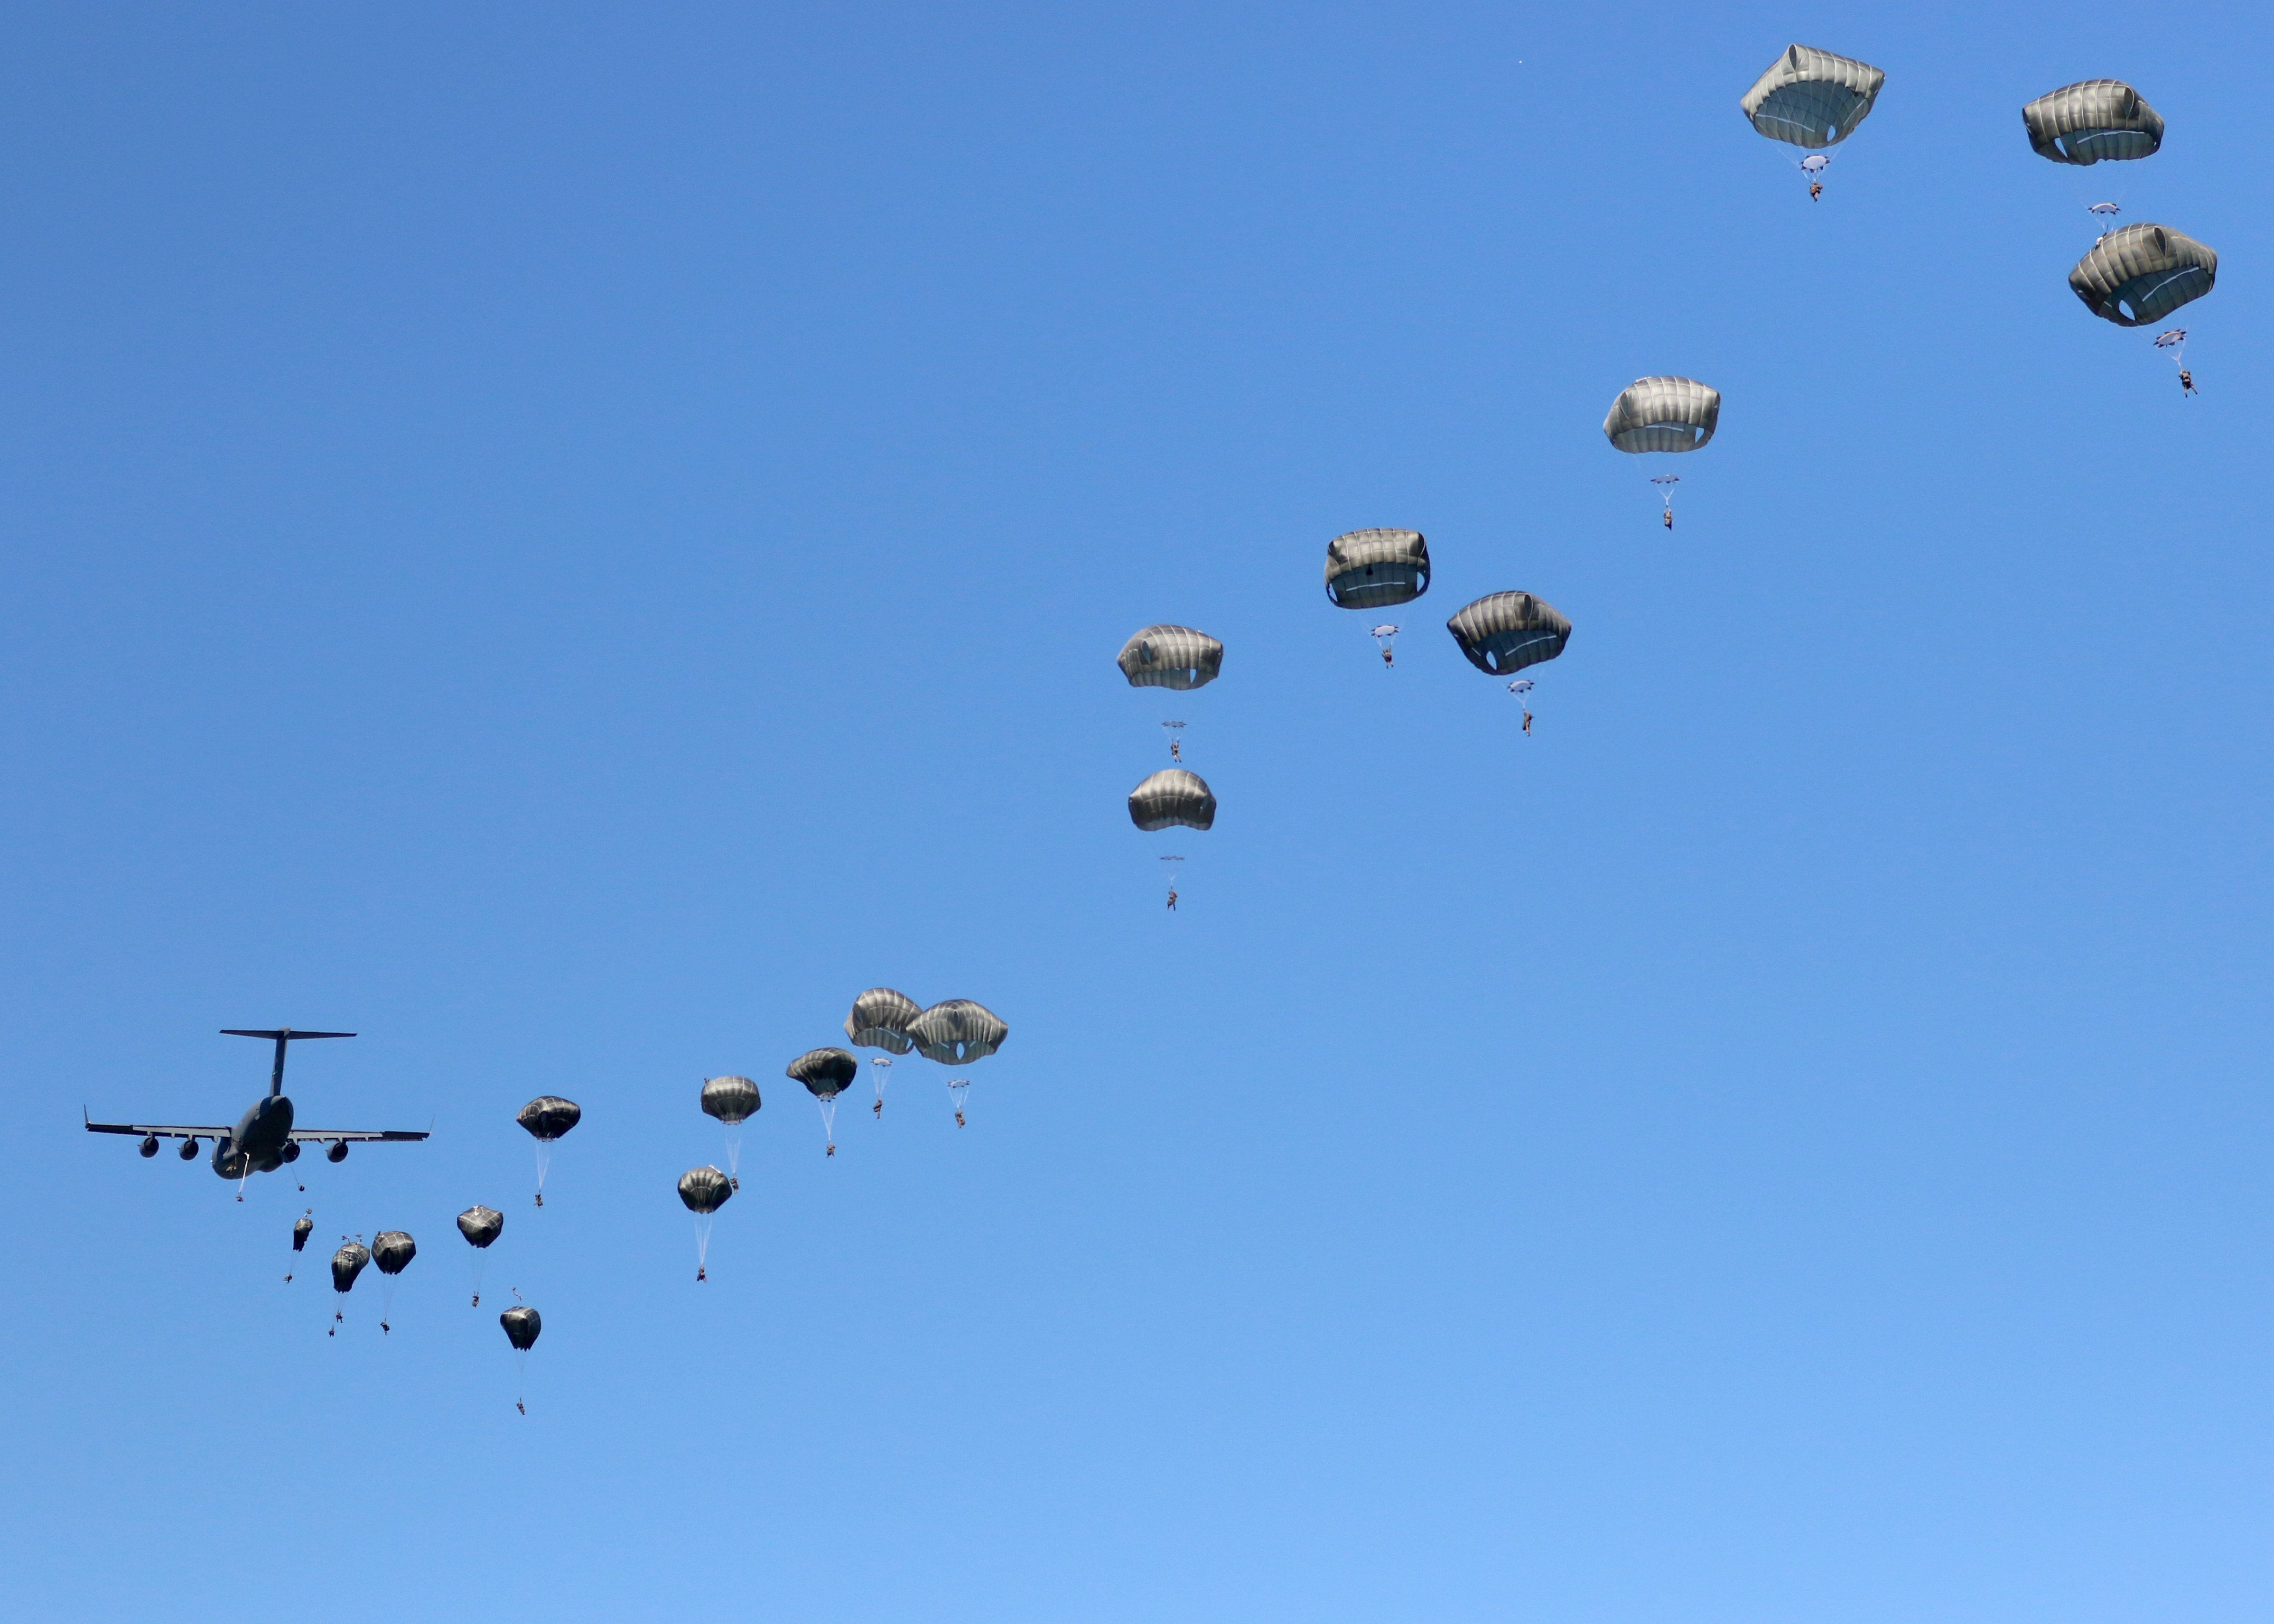 A thousand feet above the ground, a C-17 disgorges its paratroopers in a 22-second pass over thedrop zone.